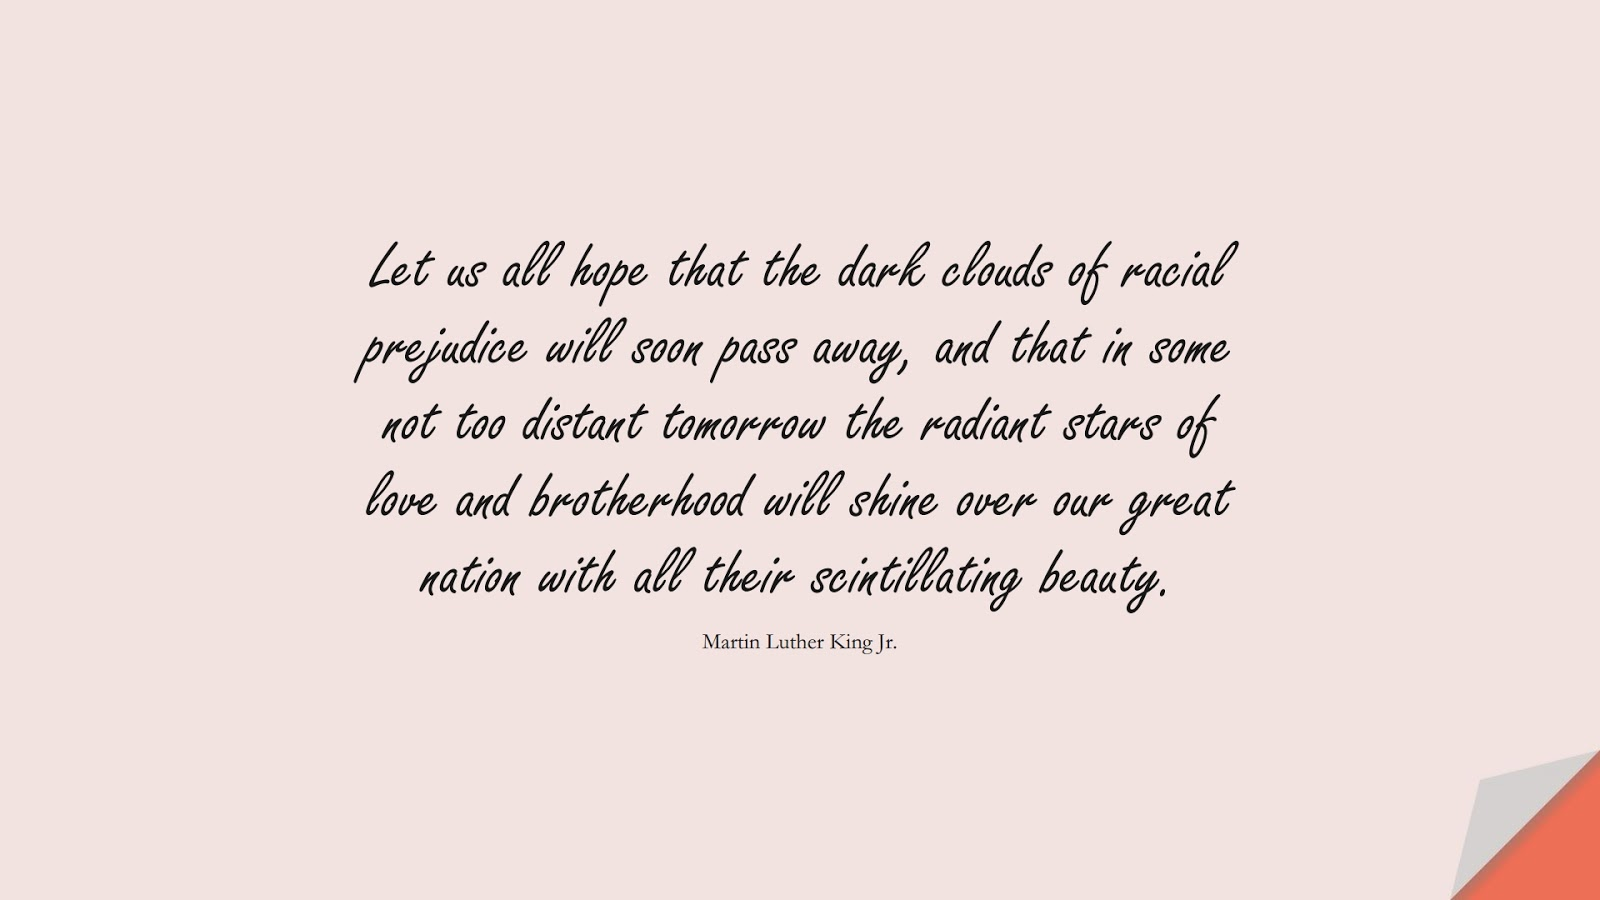 Let us all hope that the dark clouds of racial prejudice will soon pass away, and that in some not too distant tomorrow the radiant stars of love and brotherhood will shine over our great nation with all their scintillating beauty. (Martin Luther King Jr.);  #MartinLutherKingJrQuotes